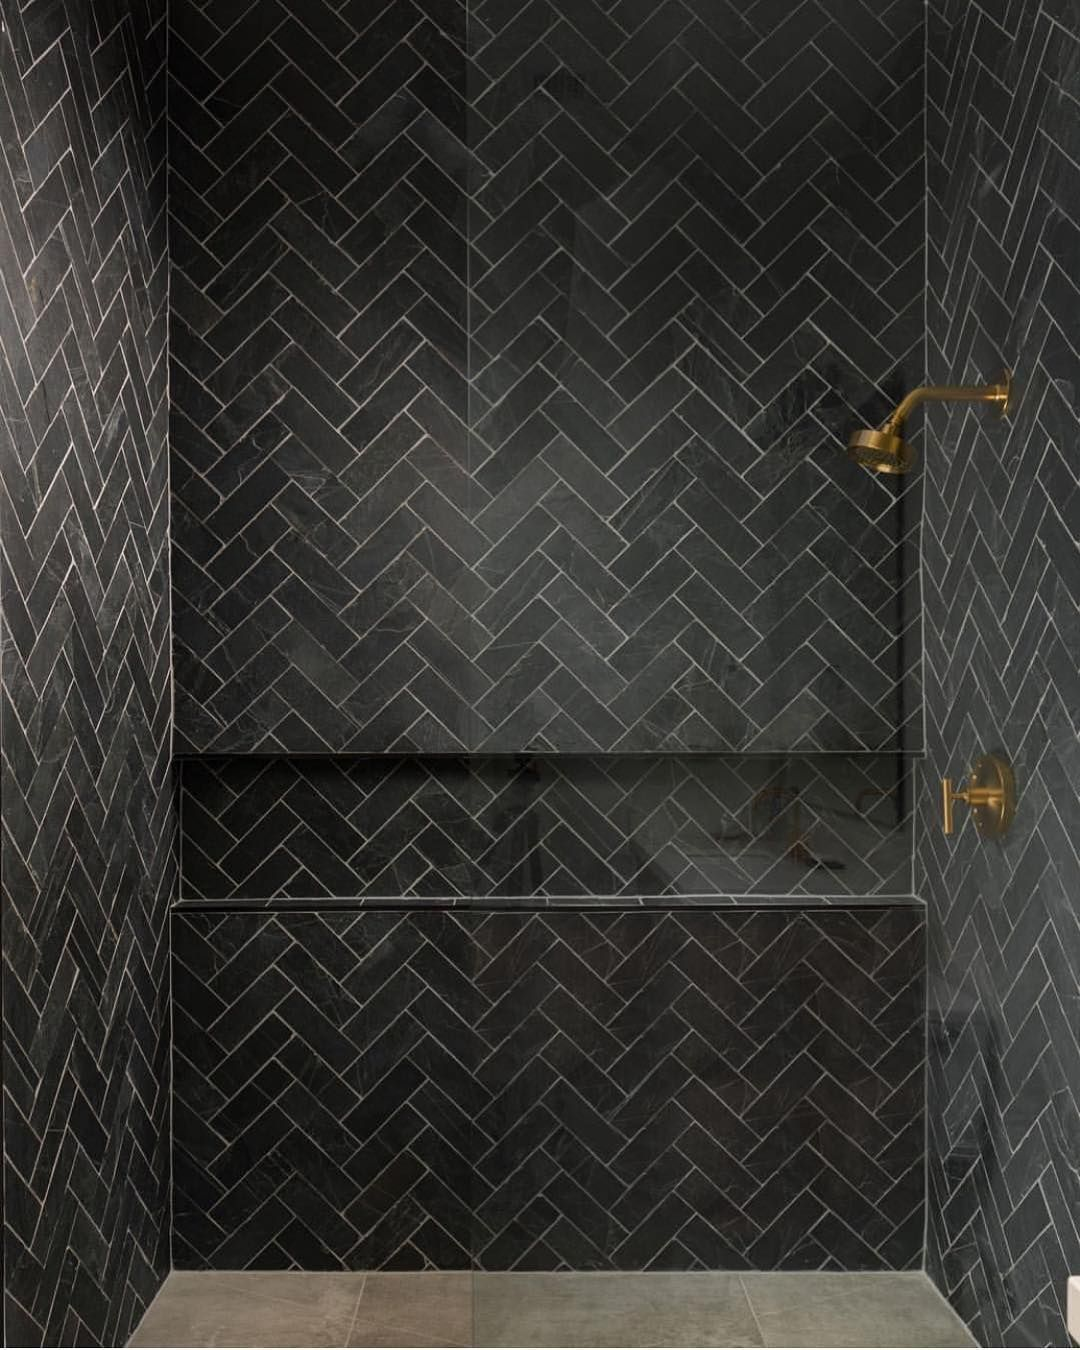 Bathrooms Of Instagram On Instagram Sleek Black Tile